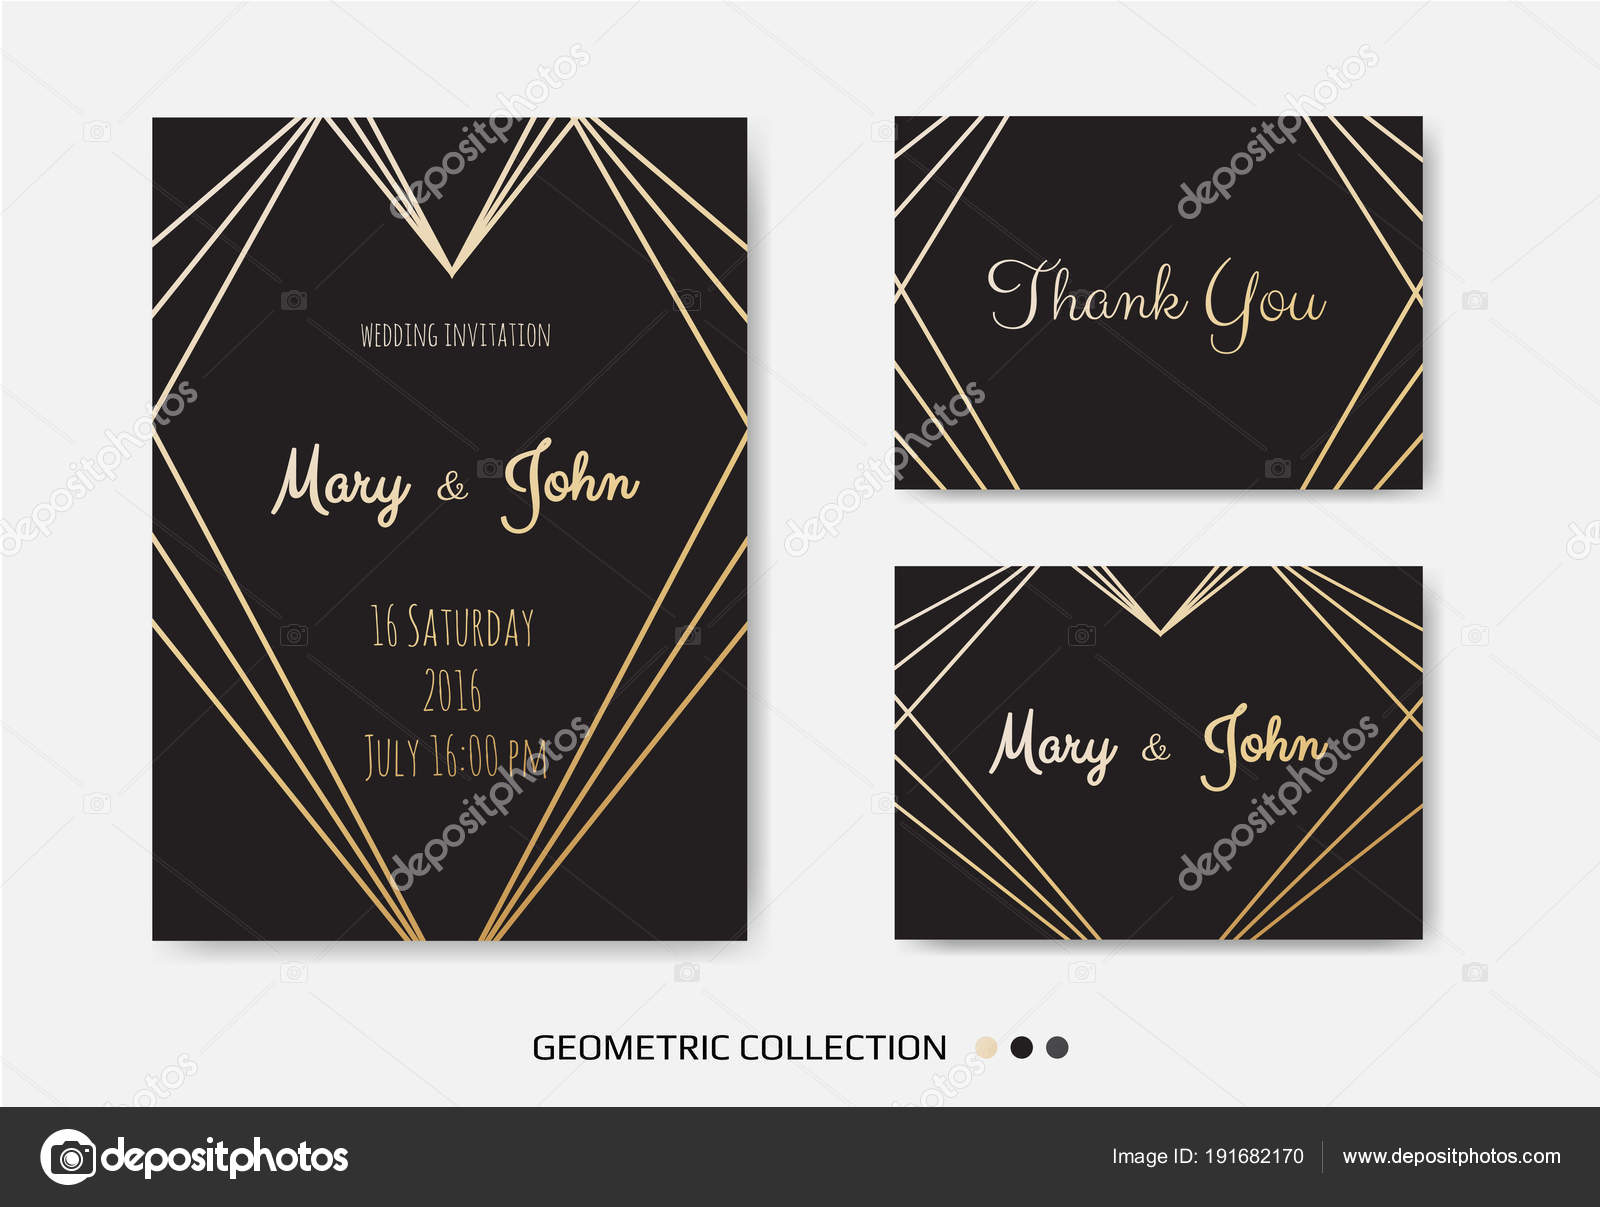 Wedding invitation invite card design geometrical art lines gold wedding invitation invite card design with geometrical art lines gold foil border frame isolated on white background vector by anasteisha stopboris Image collections